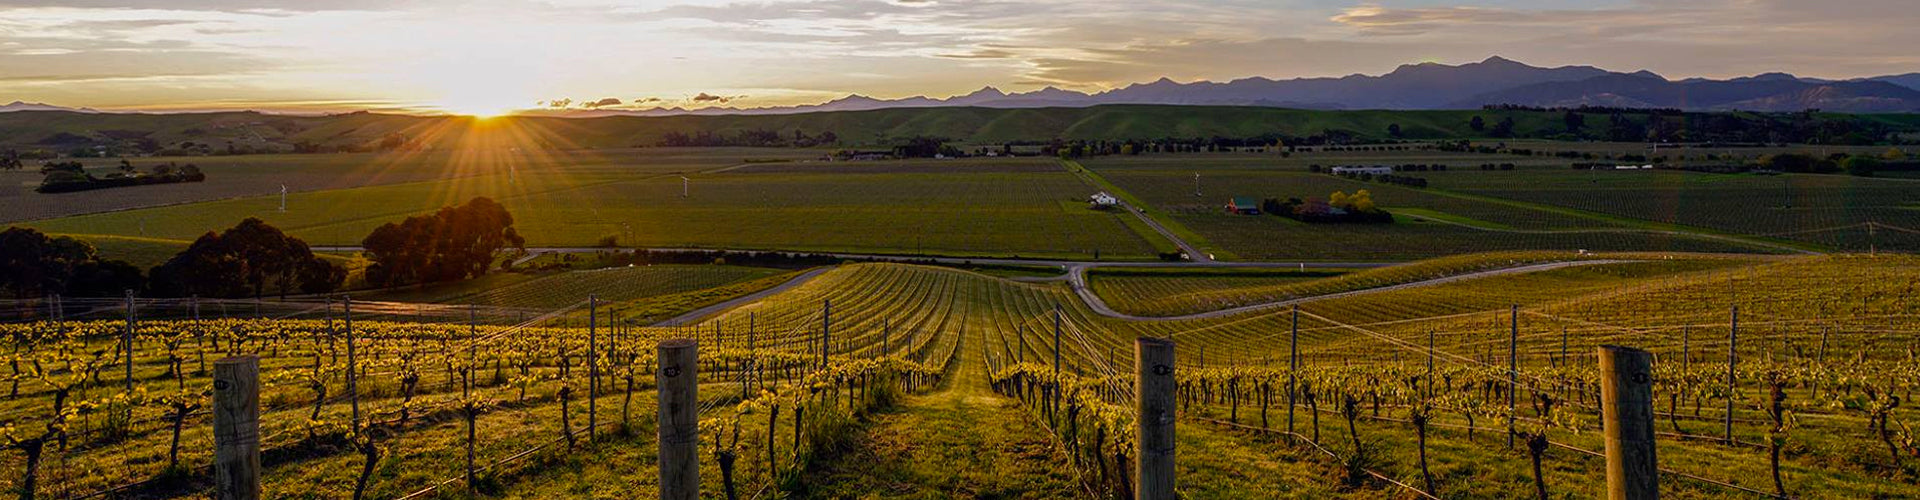 Greywacke Vineyards in Marlborough, New Zealand